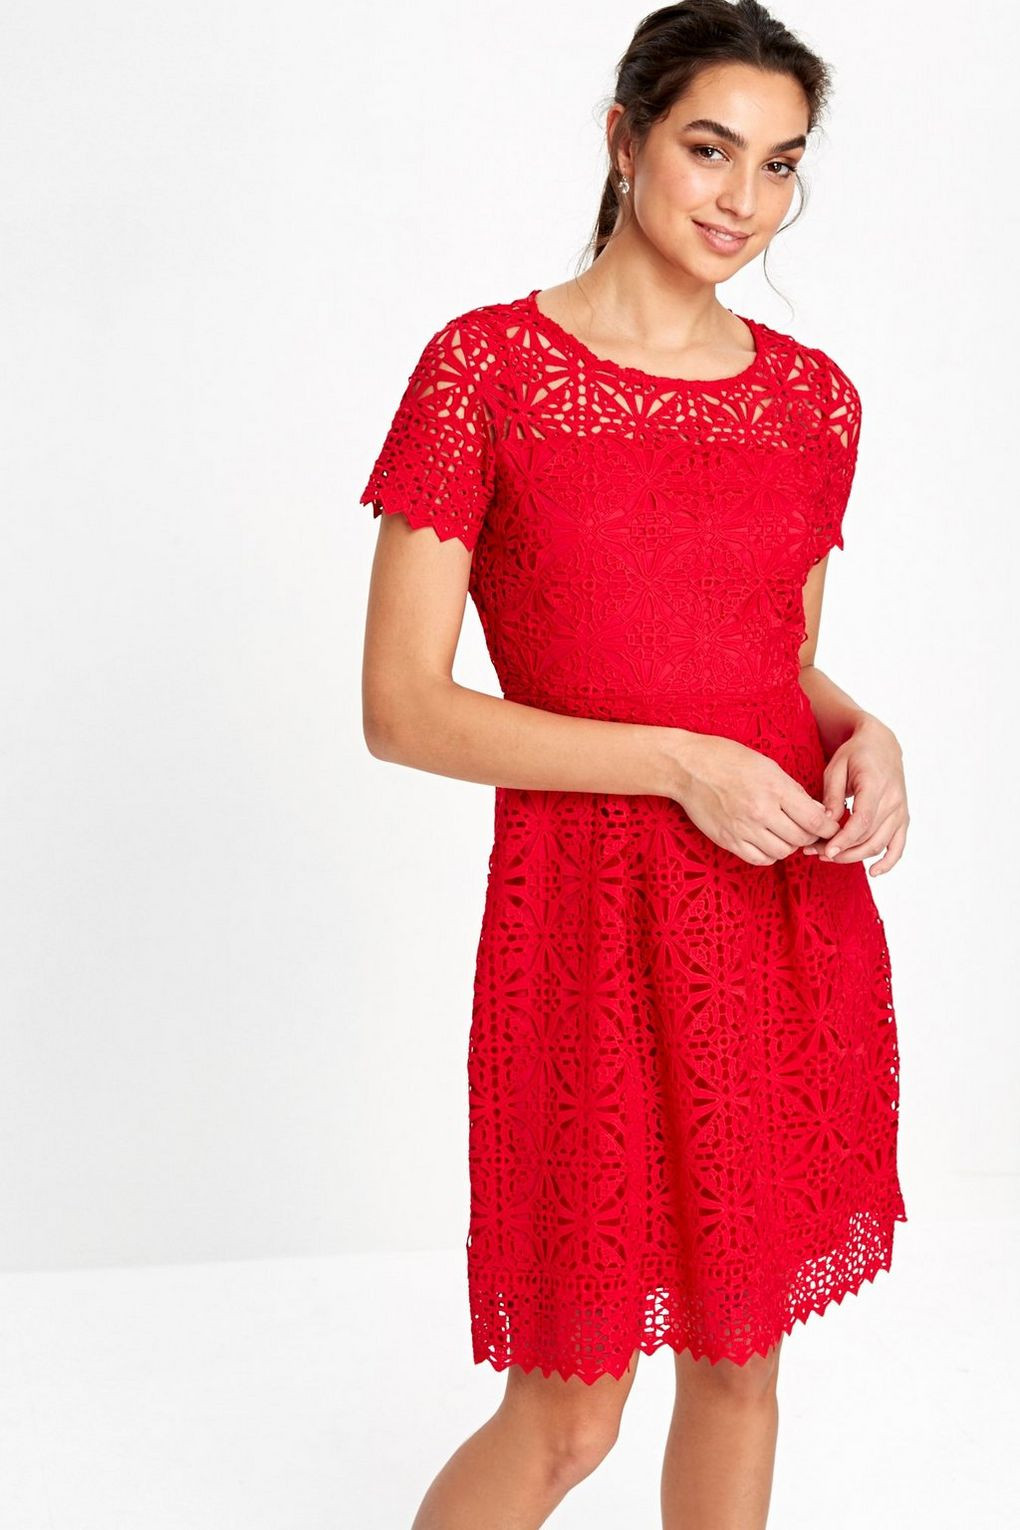 Crochet Clothing Lovely Red Crochet Lace Dress View All New In New In Wallis Of Awesome 49 Images Crochet Clothing